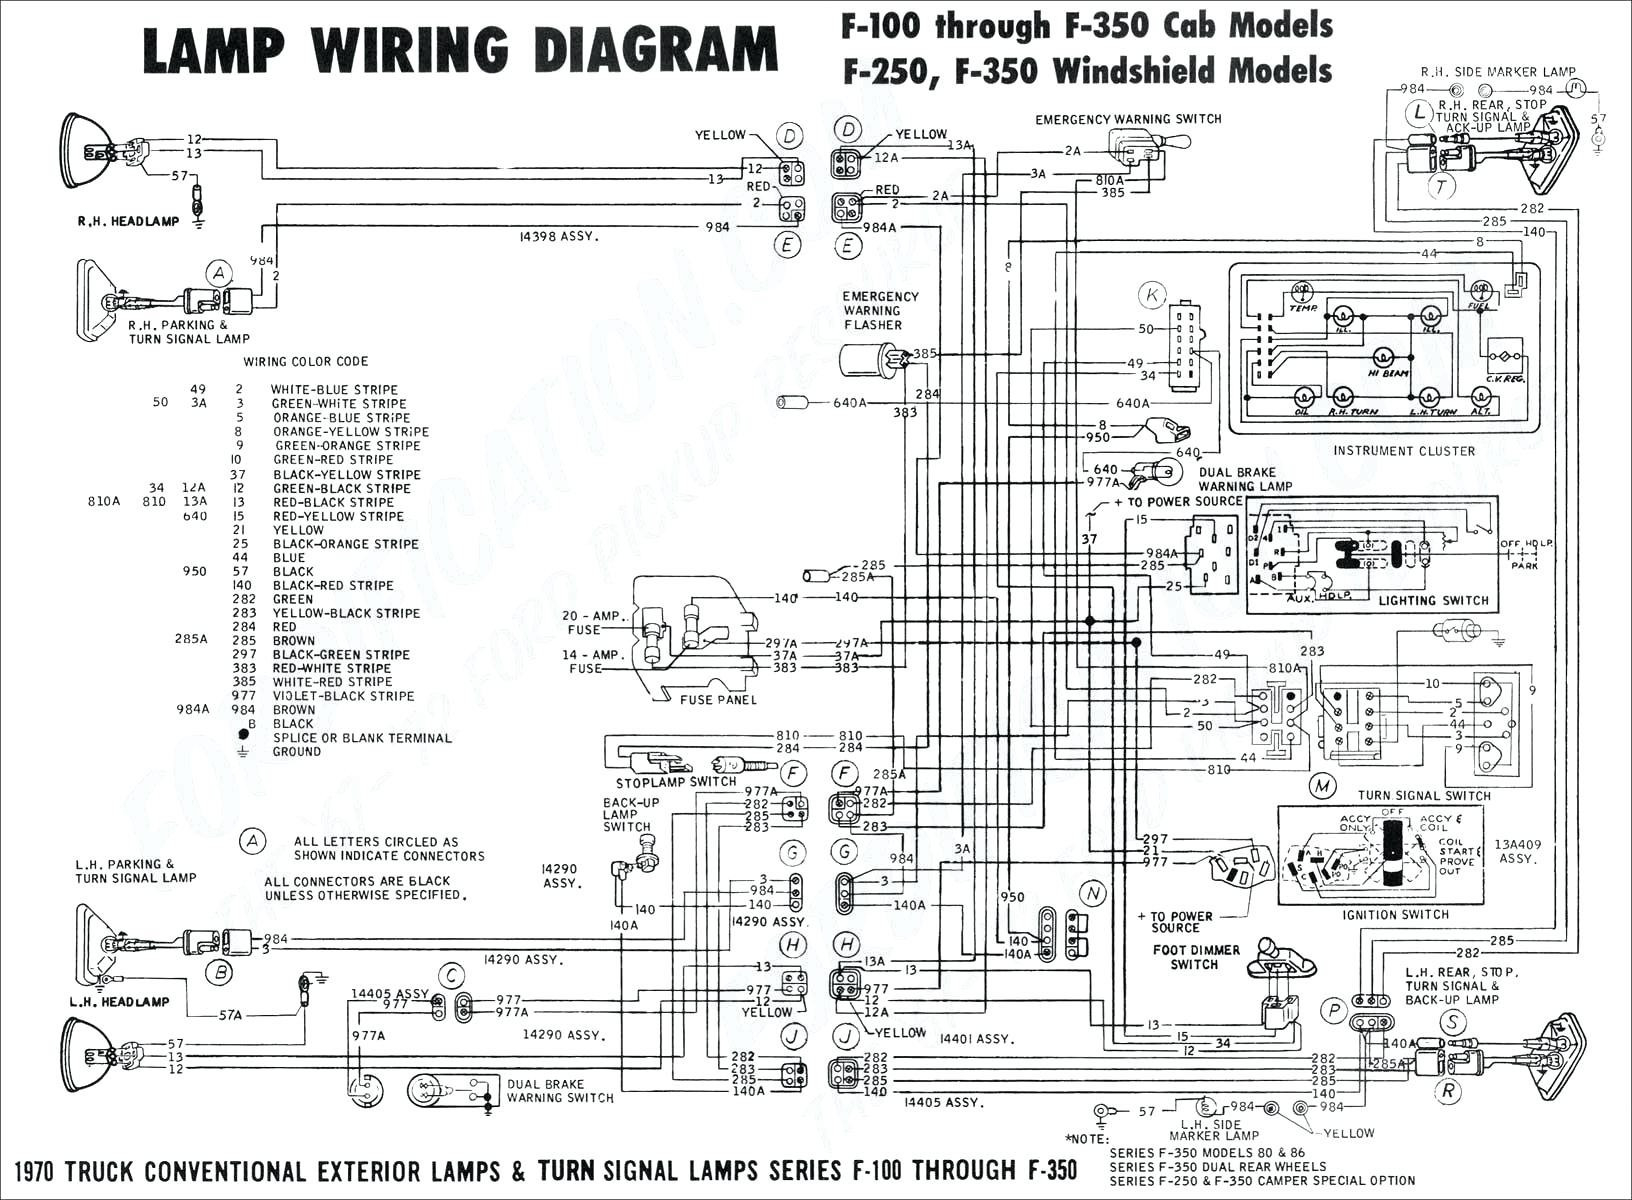 97 toyota tacoma wiring diagram explained wiring diagrams 2003 astro van headlight wiring 1997 ford f 350 wire diagram schematic diagrams 97 pontiac grand prix wiring diagram 97